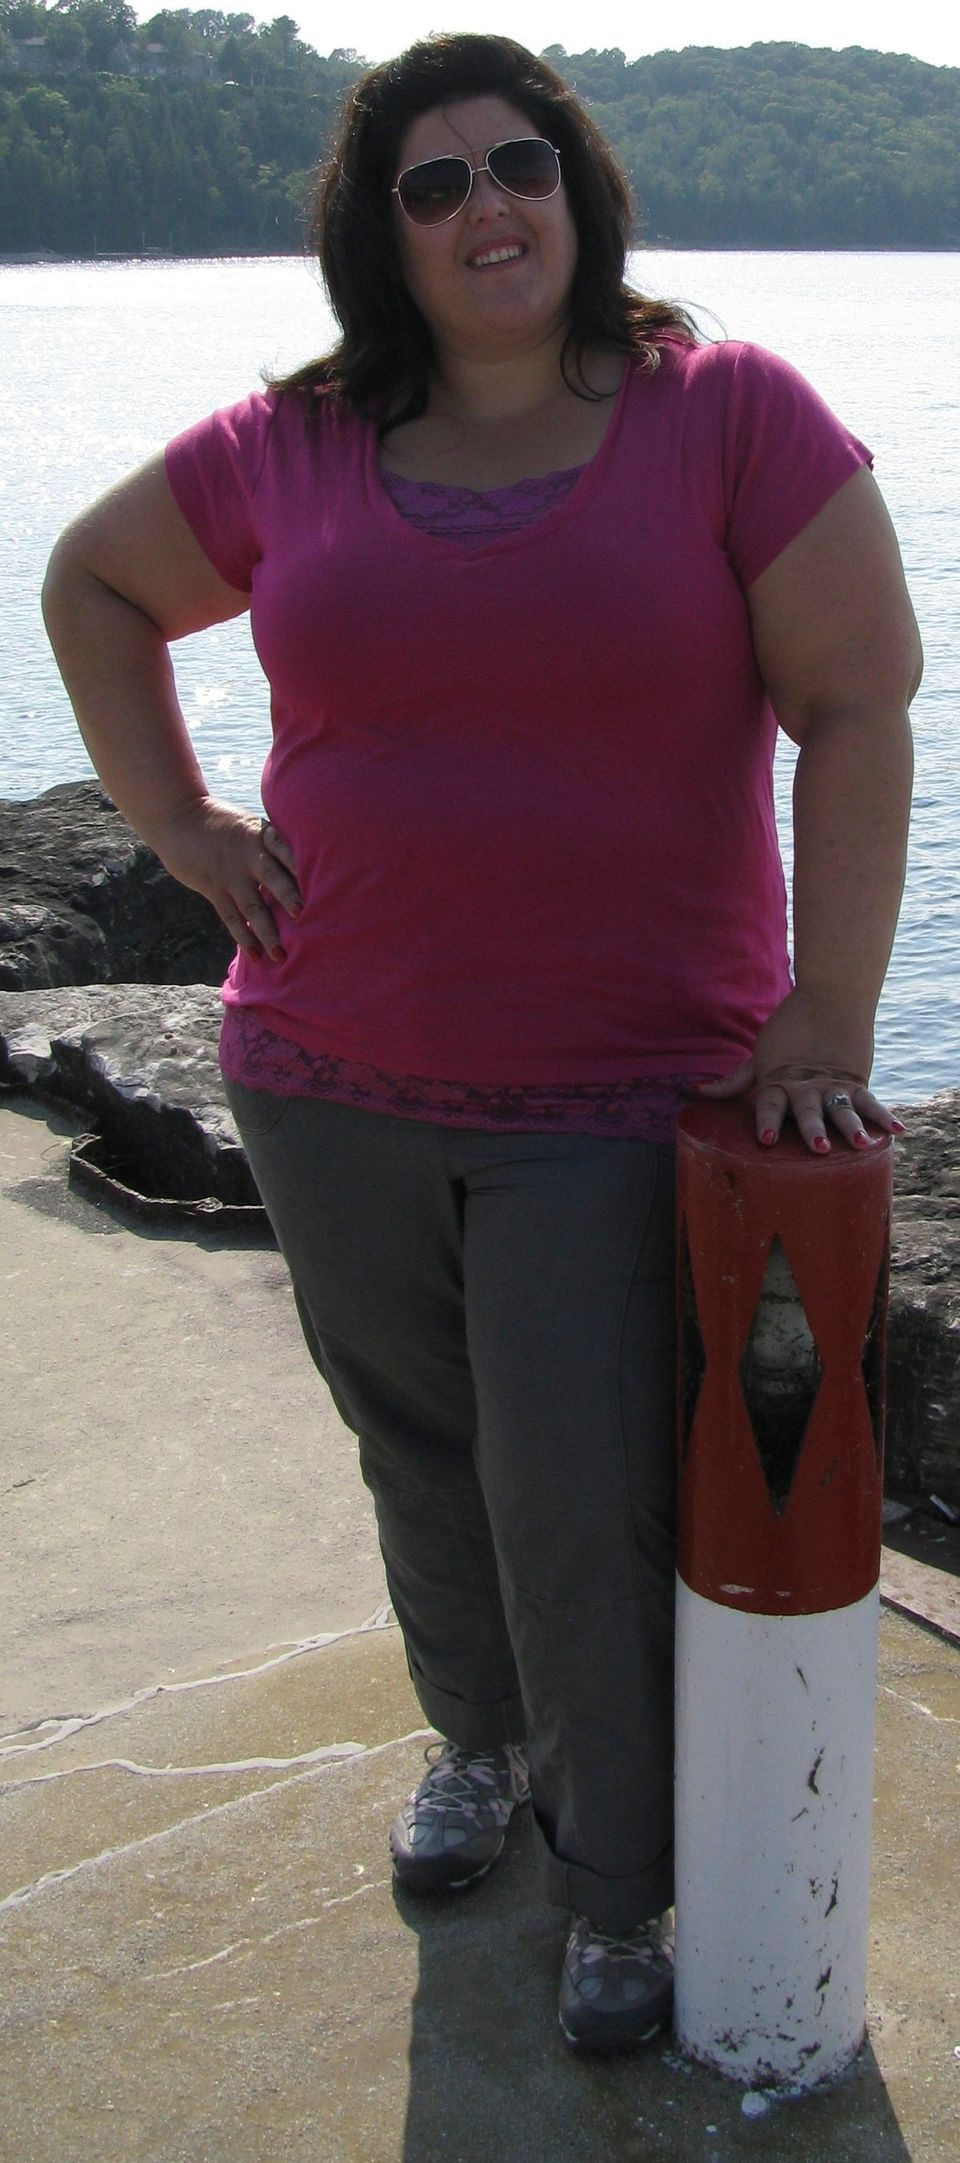 """<a href=""""https://www.huffpost.com/entry/i-lost-weight-jamie-morgan_n_6061830"""" target=""""_blank"""">Read Jamie's story here.</a>"""